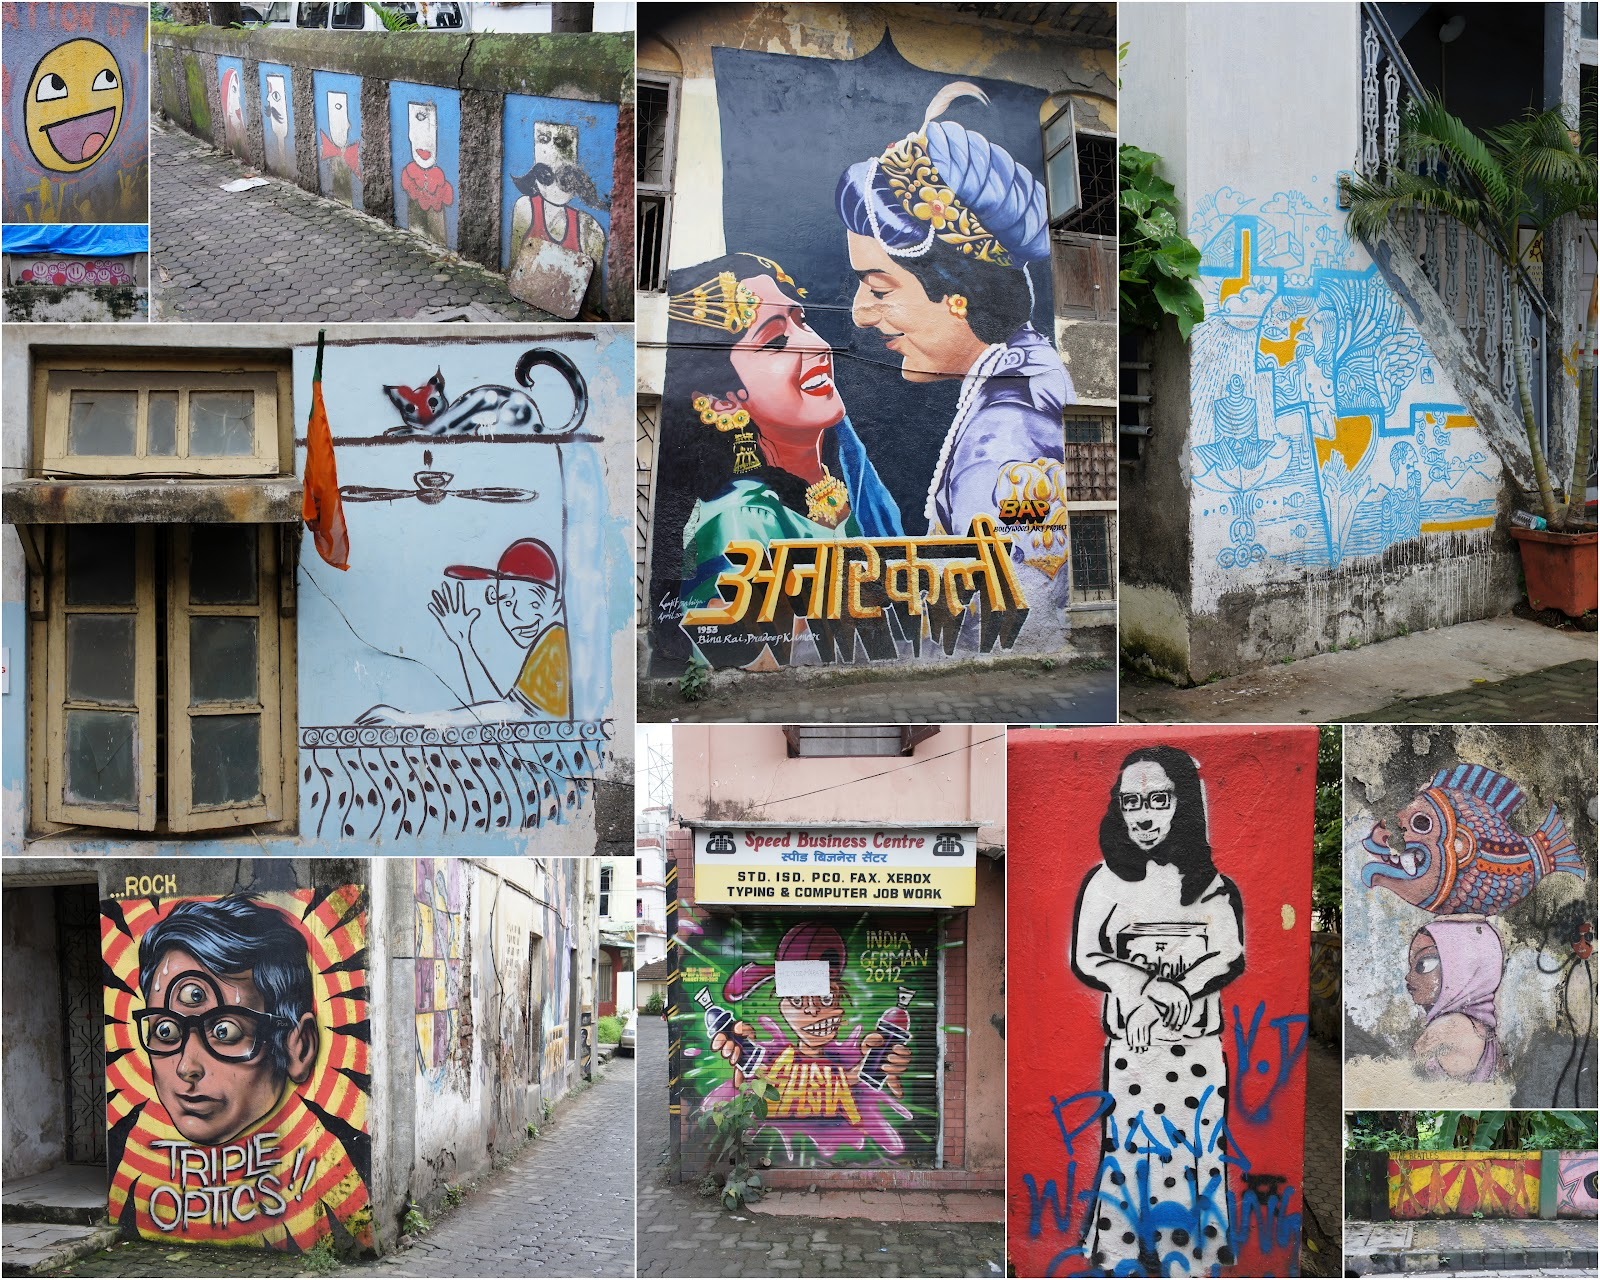 Graffiti wall bandra - I Have Looked Up Some History On The Area And Apparently Ranwar Is One Of The Original 24 Pakhadis Hamlets That Made Up Bandra Since The Earliest